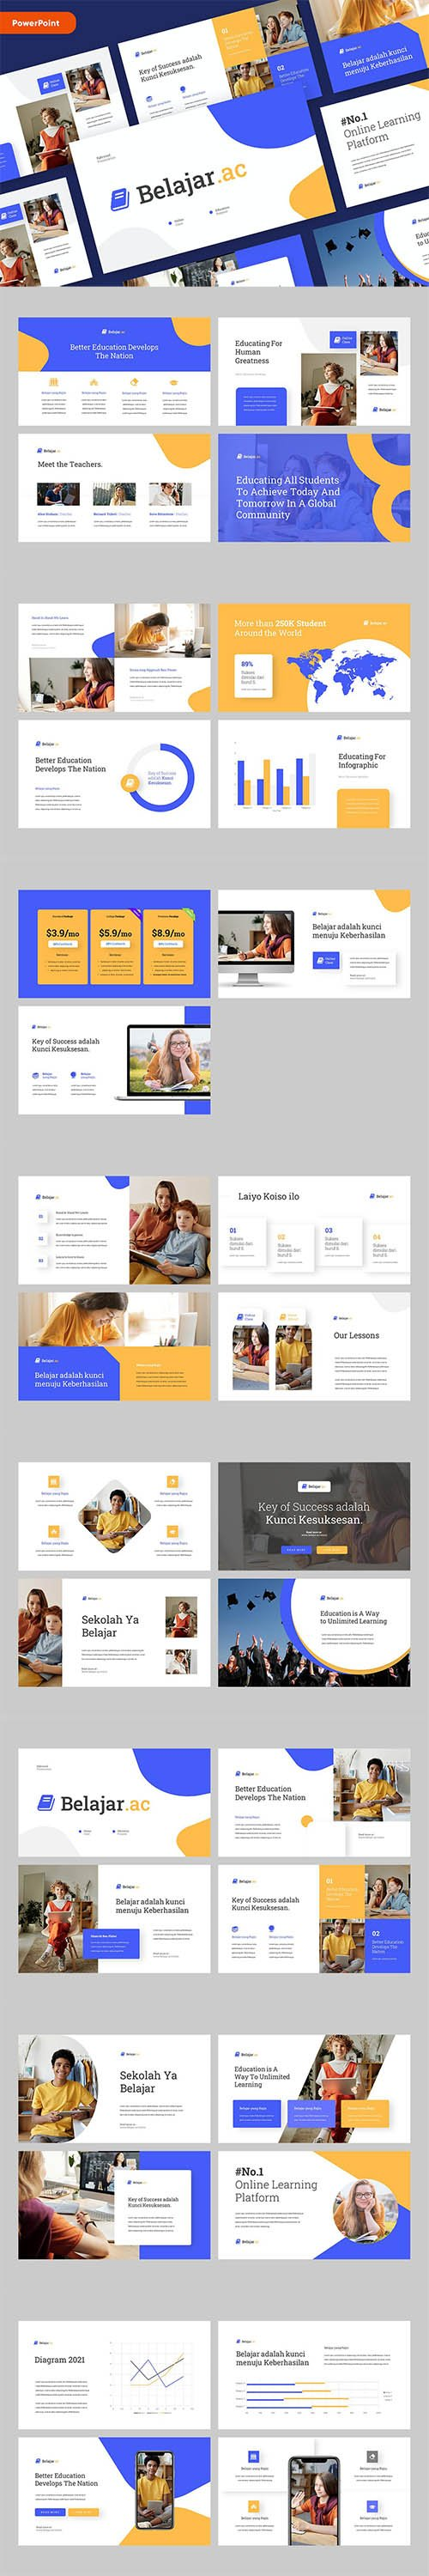 BELAJAR - Education Powerpoint Template